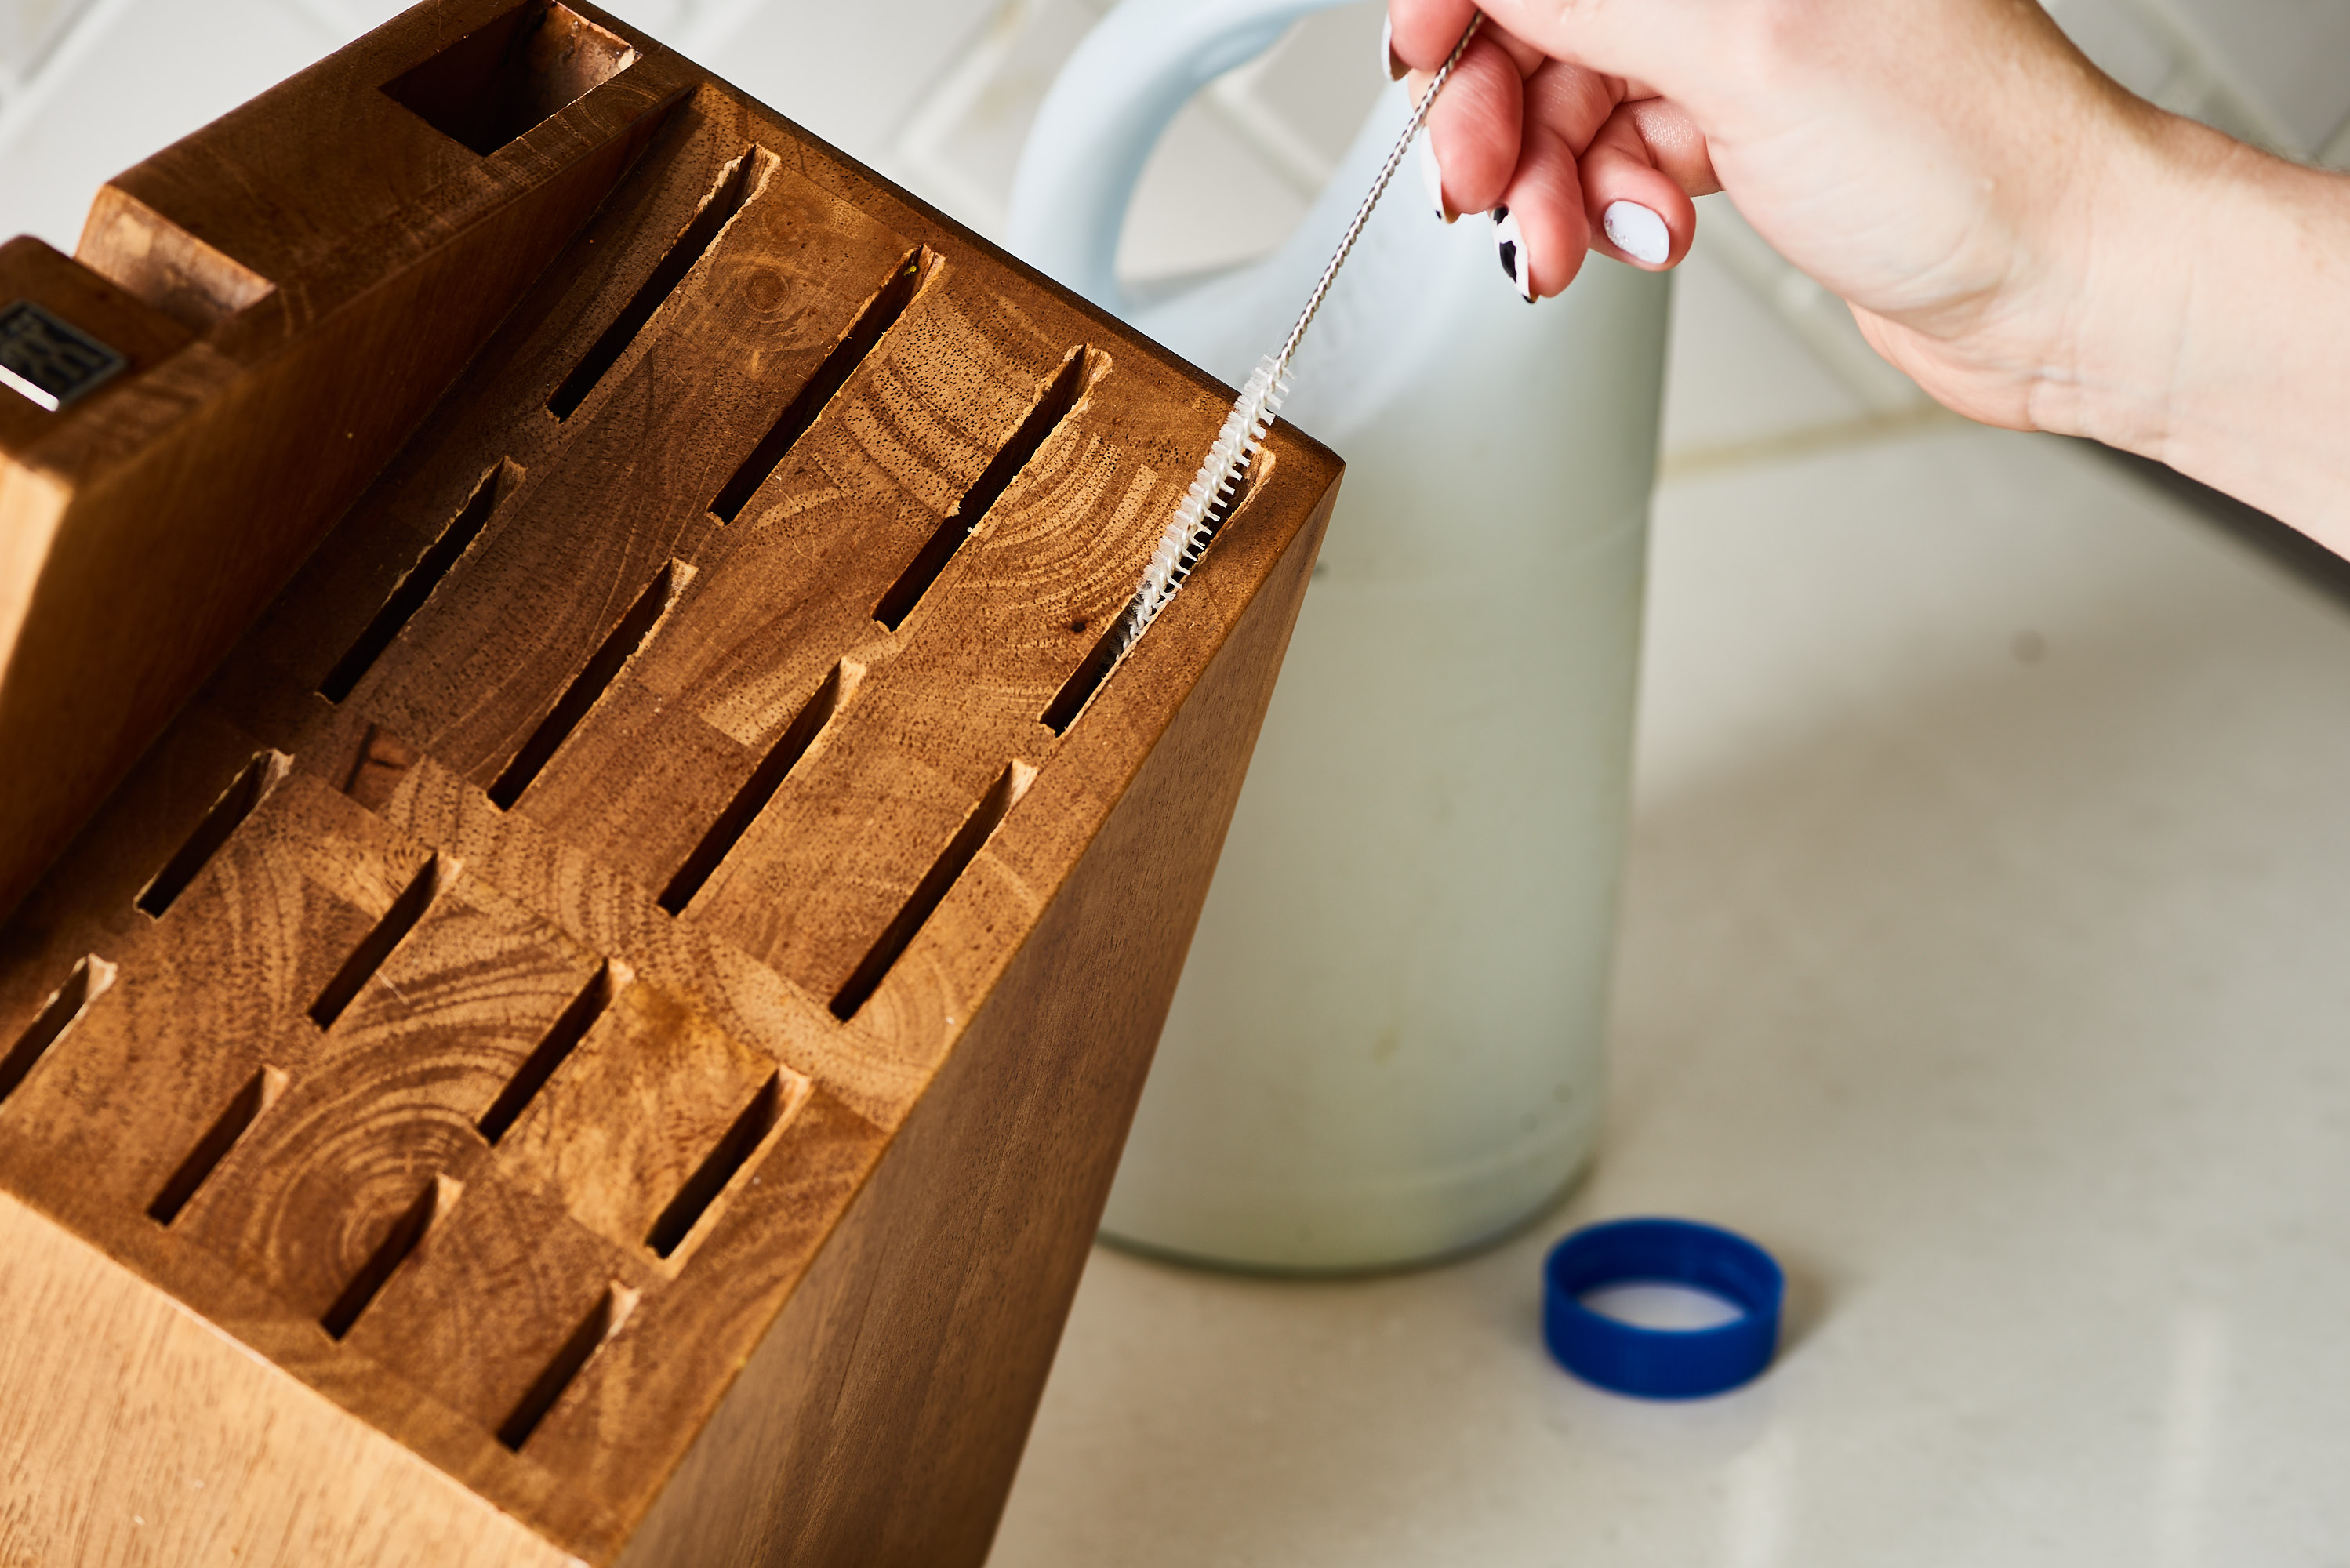 How To Clean a Wooden Knife Block | Kitchn